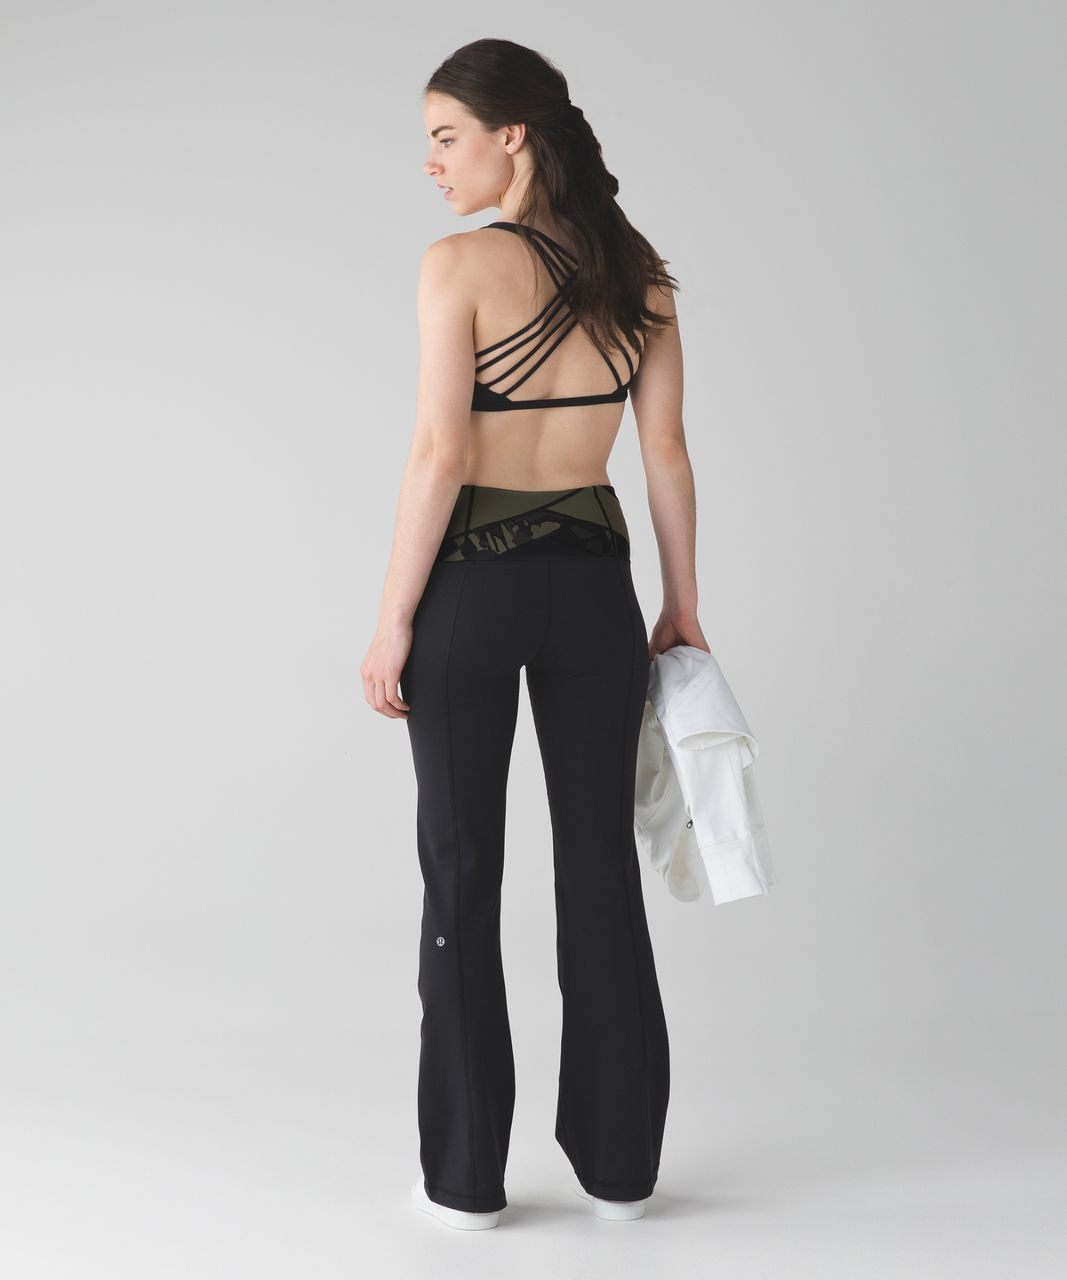 Lululemon Groove Pant III (Tall) - Black / Deep Coal / Pop Cut Fatigue Green Black